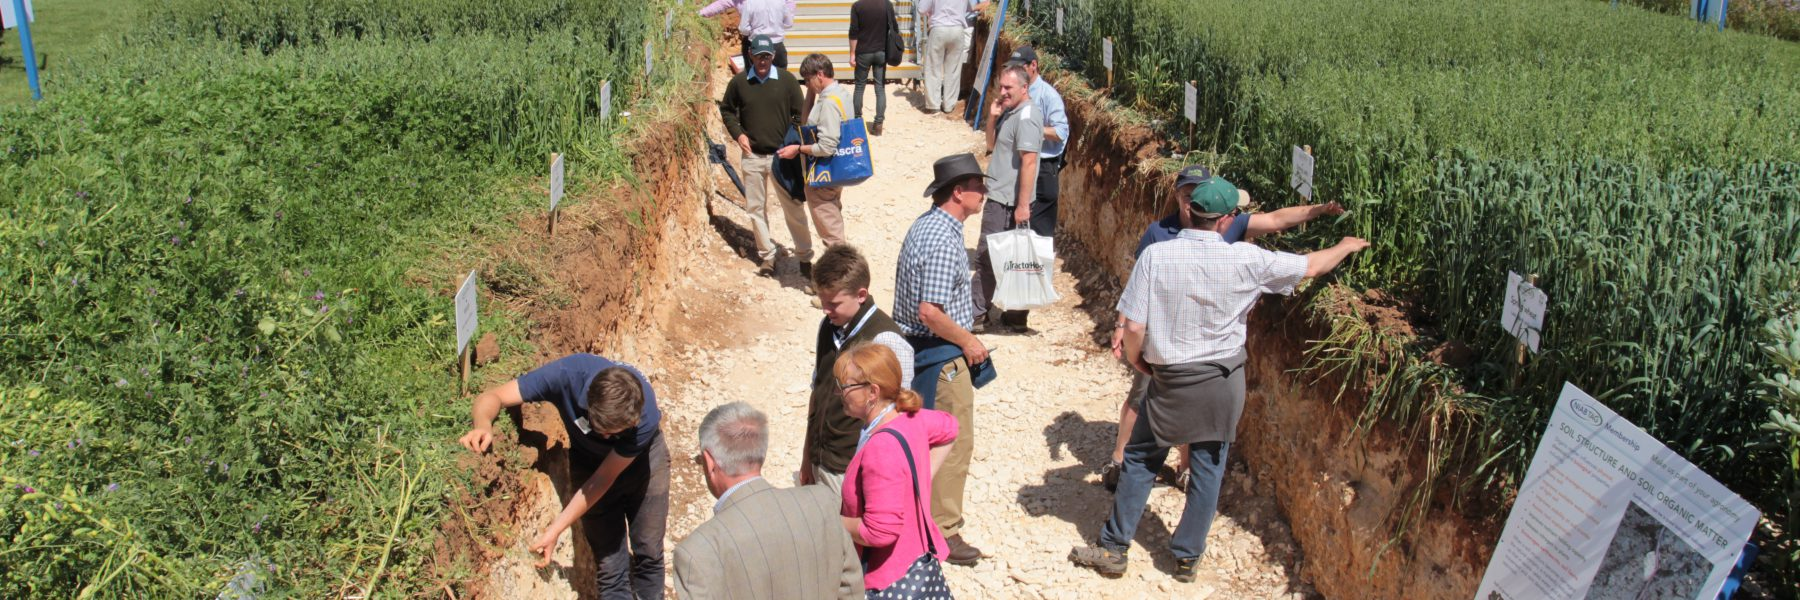 The Soil Pit - Cereals 2017